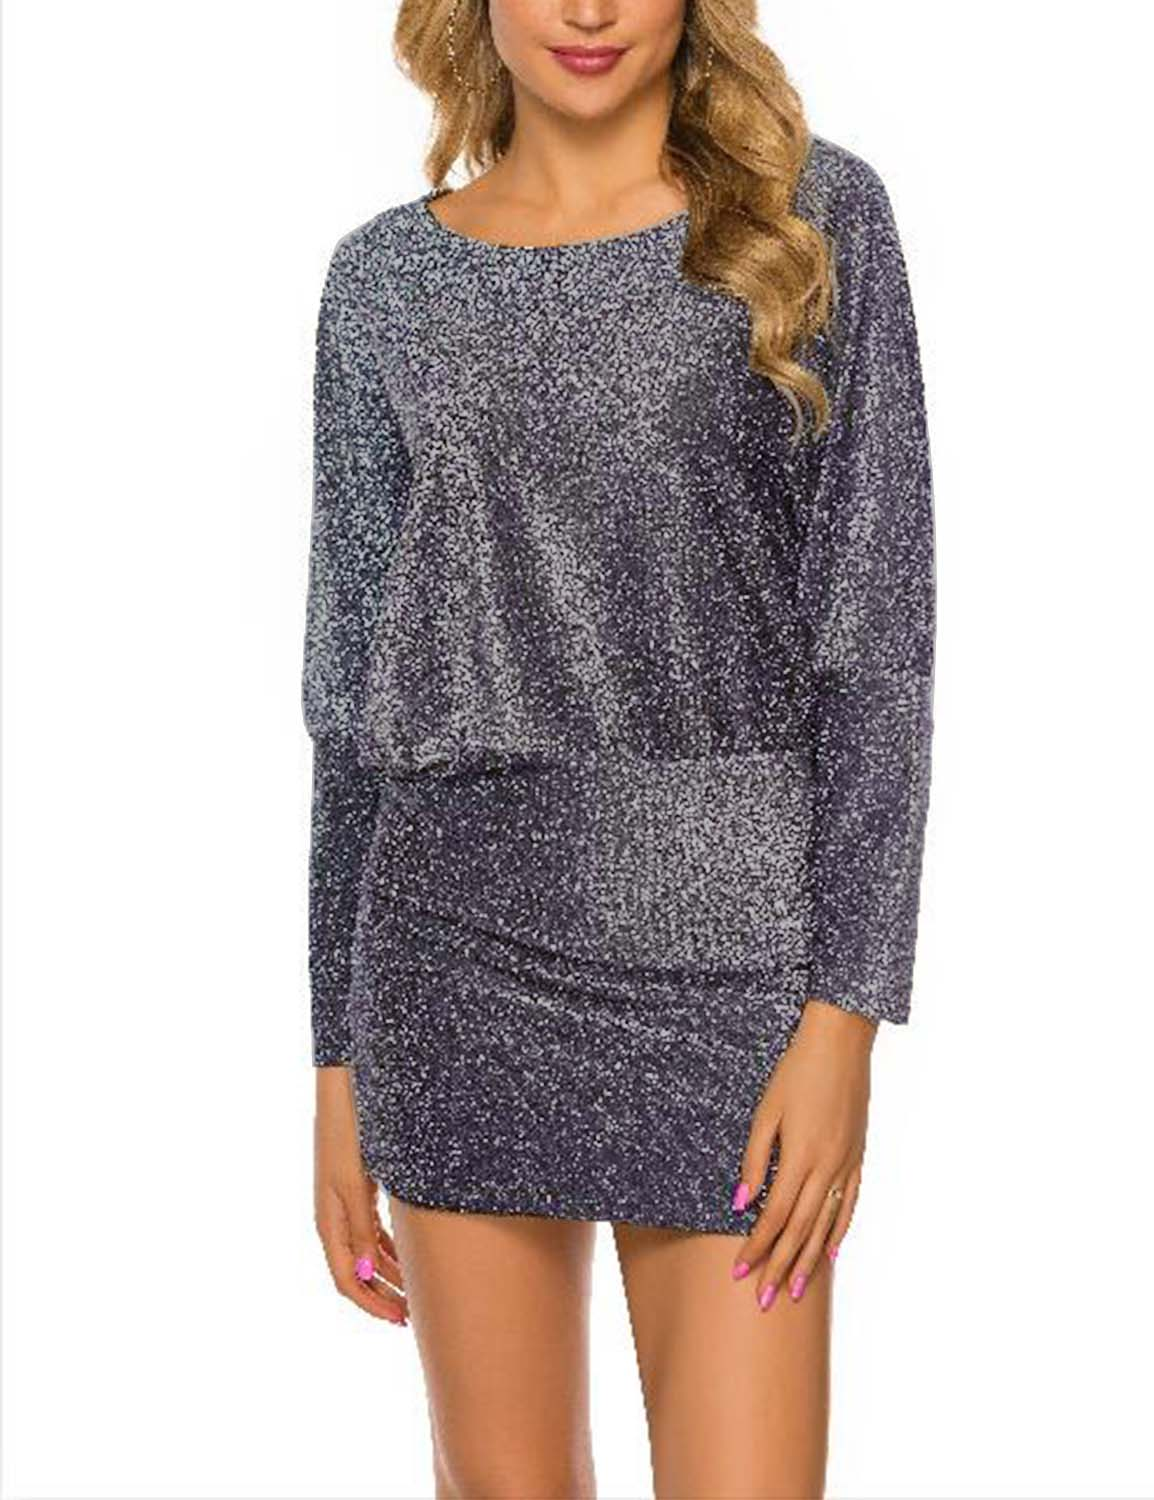 Glittering Party Bodycon Club Mini Dress - Blooming Jelly